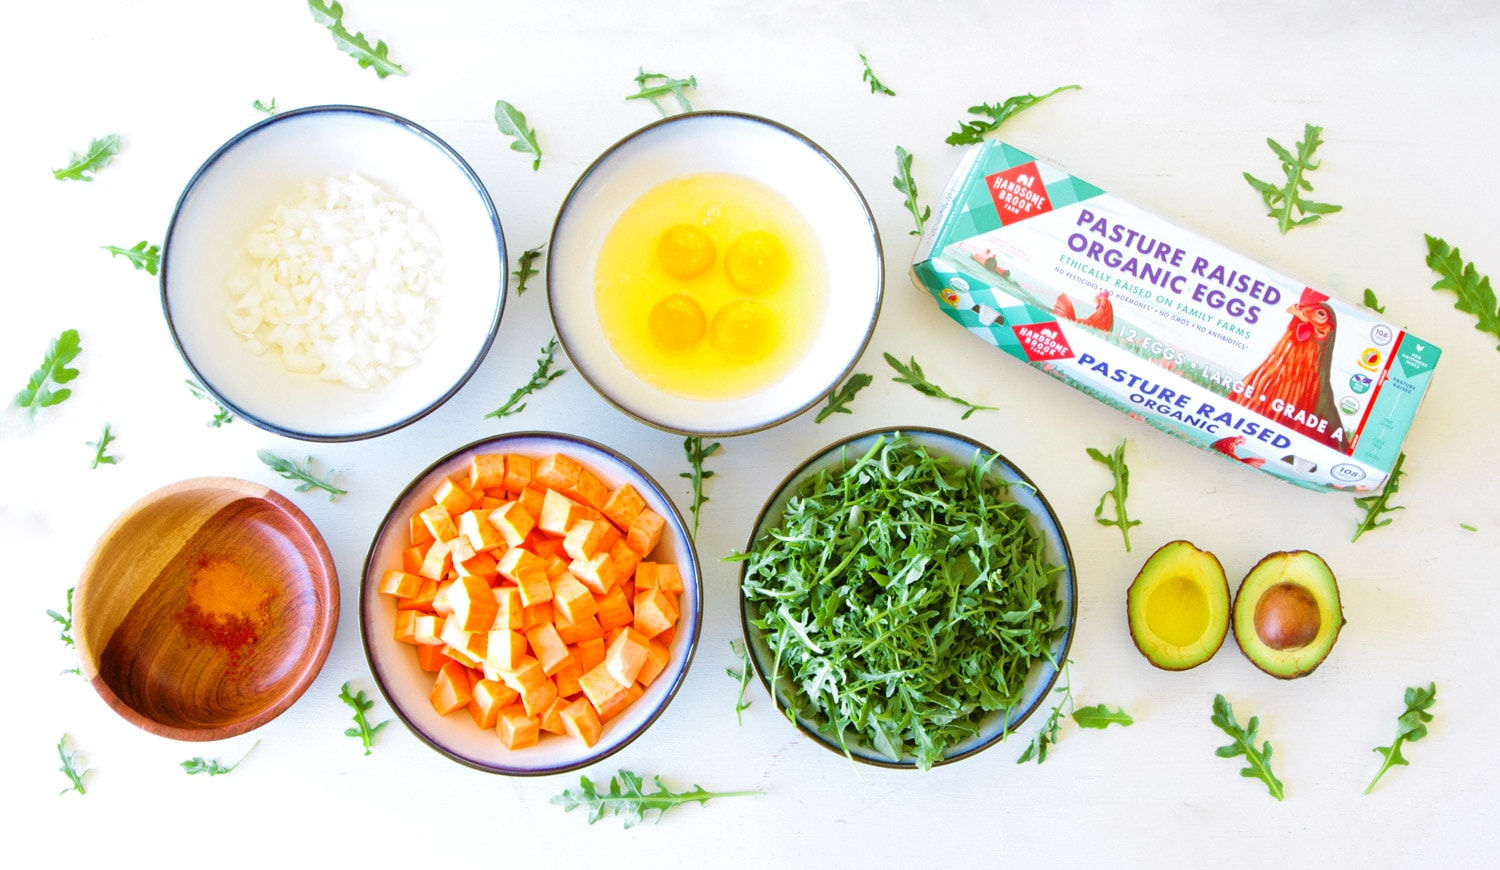 Superfood Scramble Recipe Ingredients